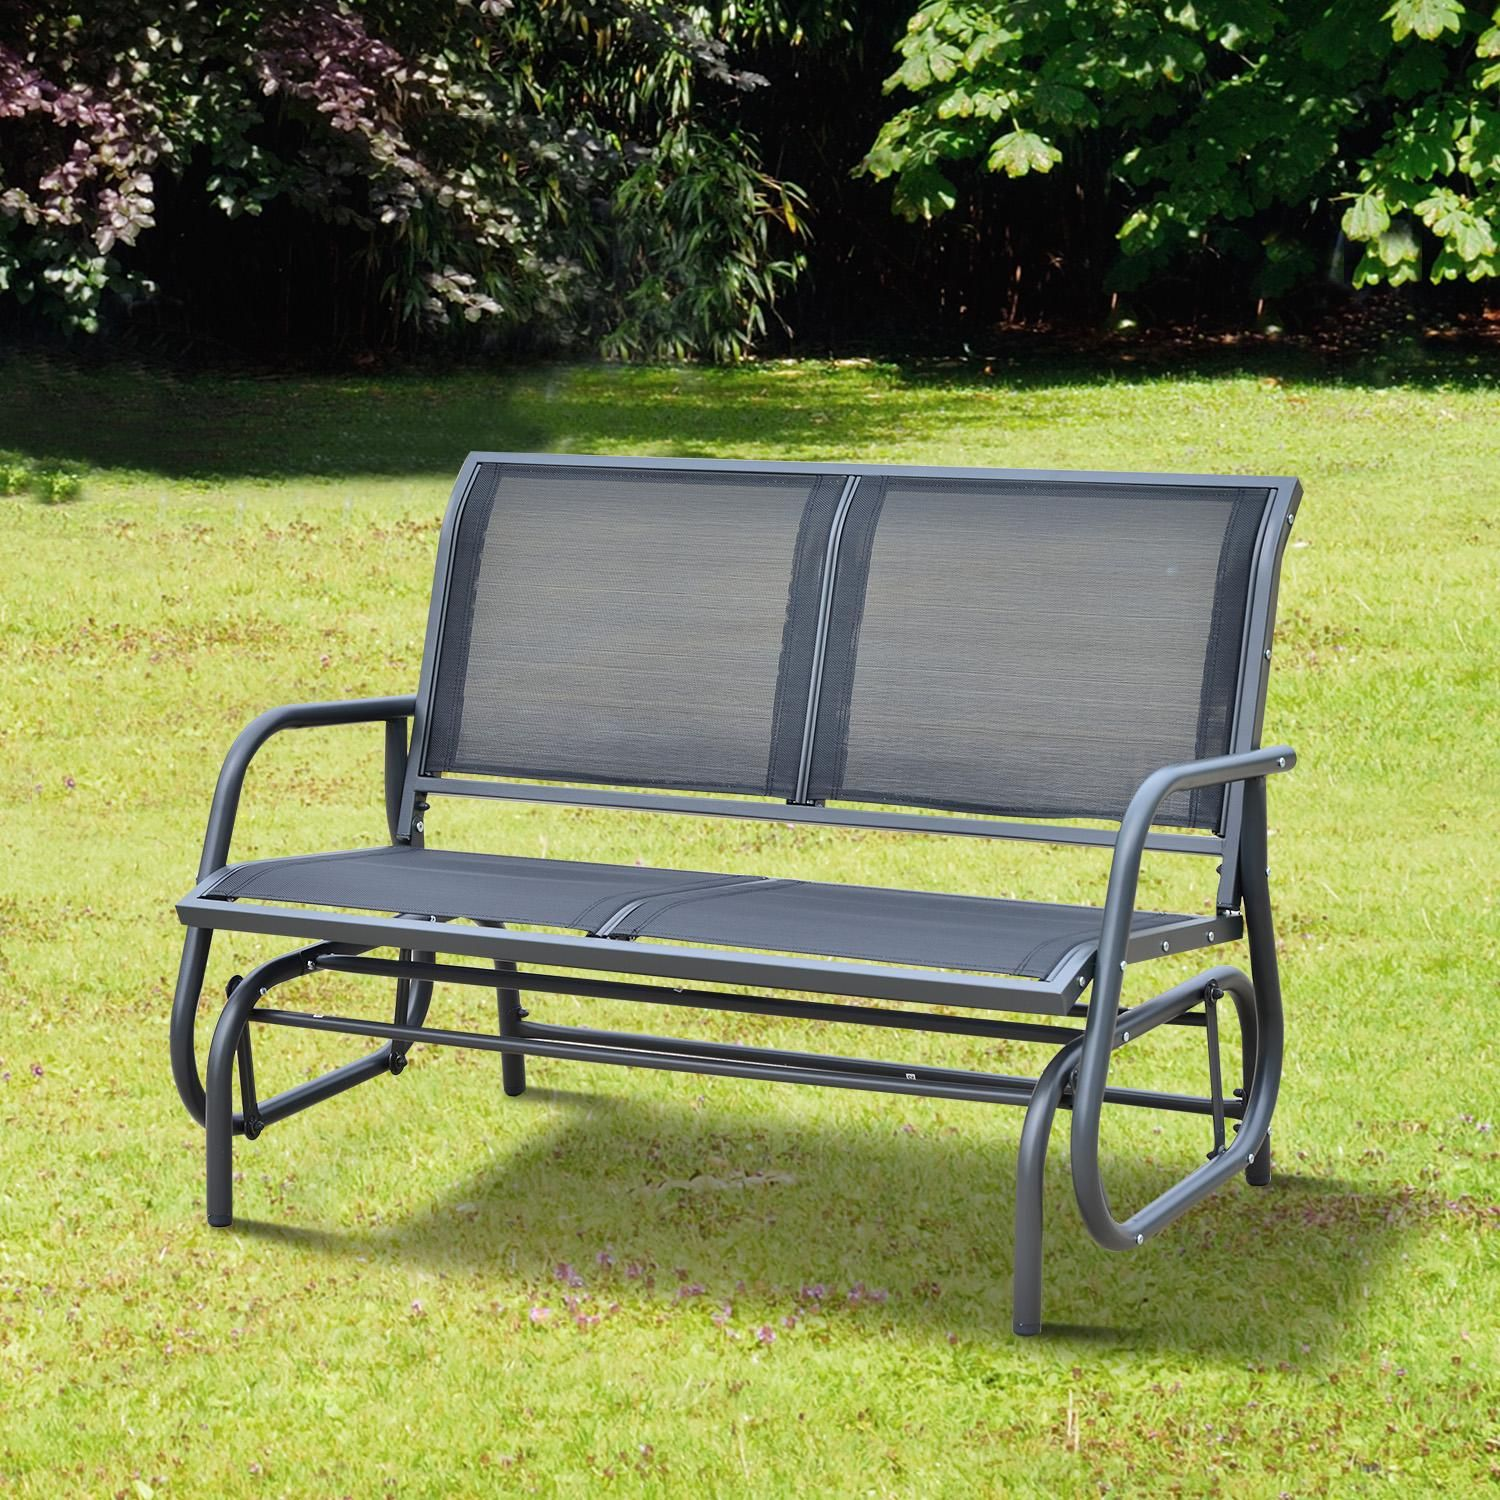 Outsunny 48 Outdoor Patio Swing Glider Bench Chair Dark Gray